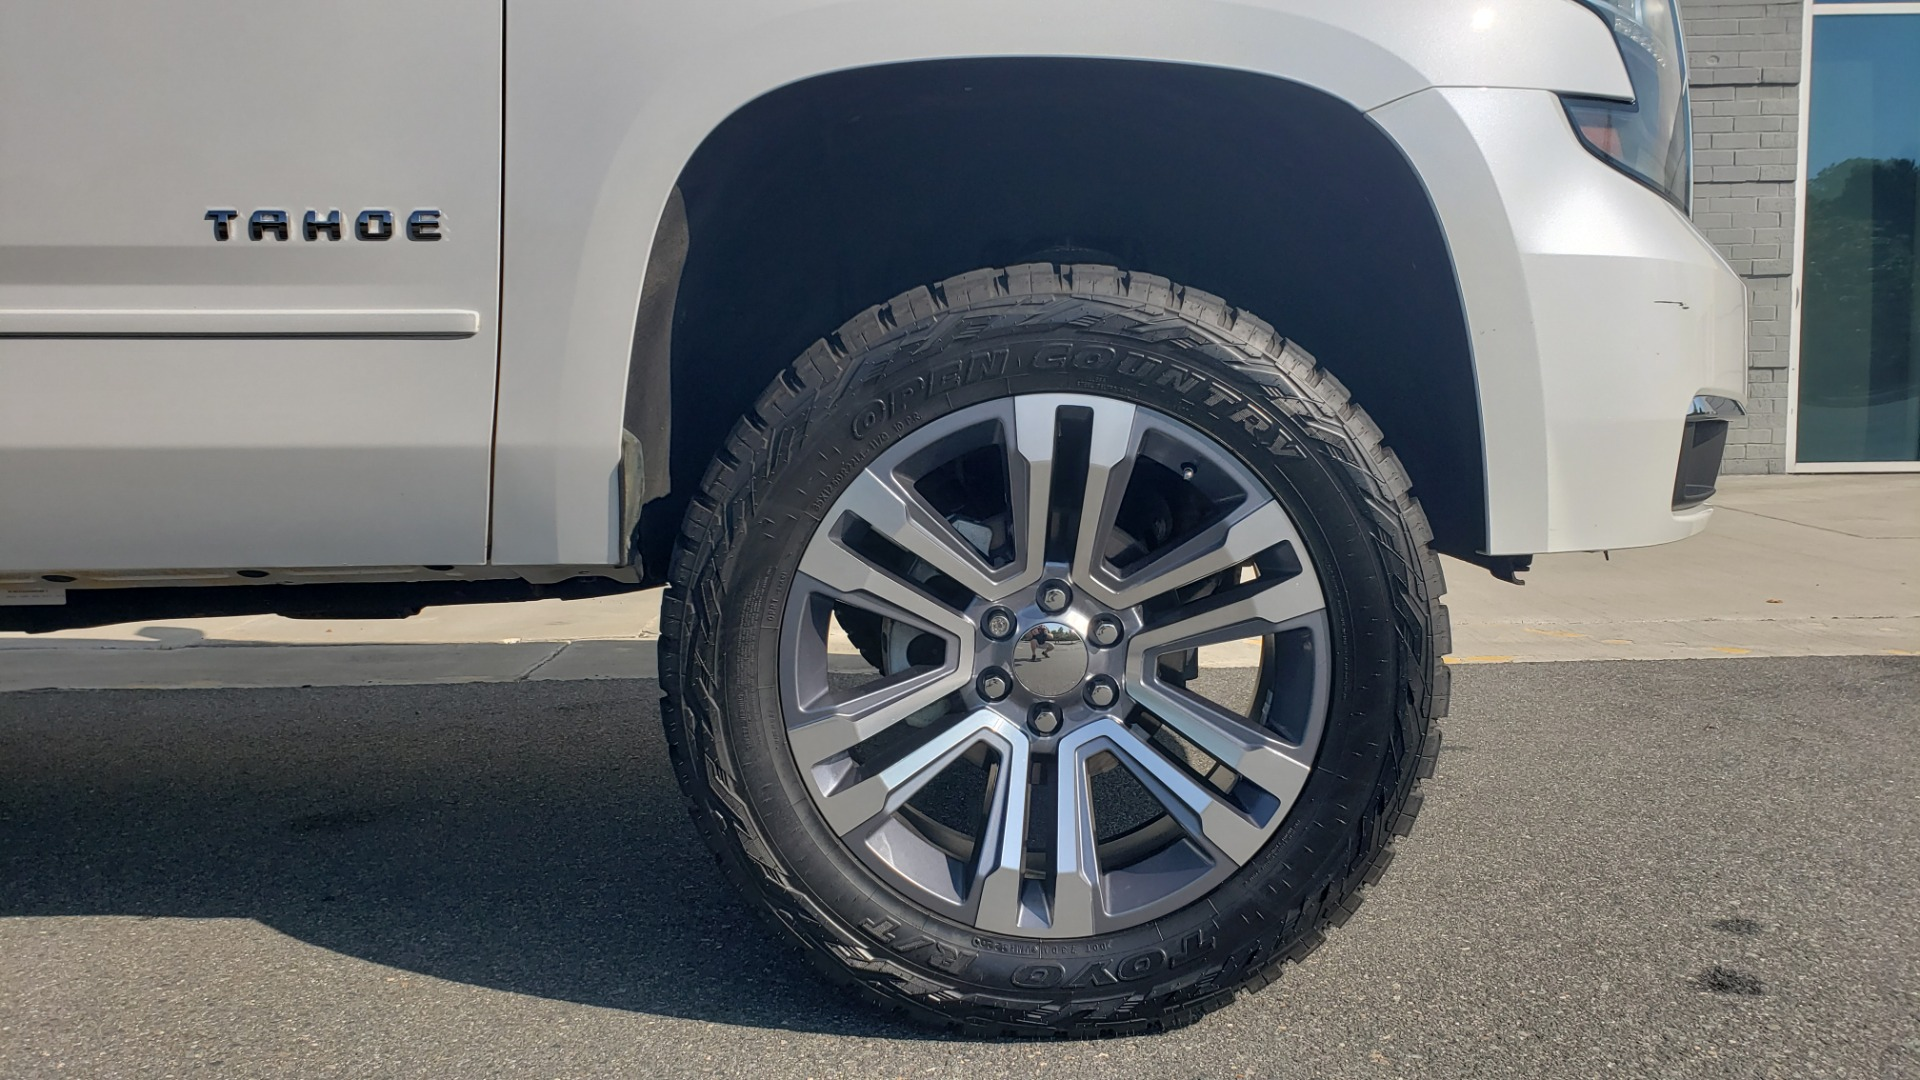 Used 2018 Chevrolet TAHOE PREMIER 4X4 / NAV / BOSE / SUNROOF / ENT SYS / 3-ROW / REARVIEW for sale $55,995 at Formula Imports in Charlotte NC 28227 83